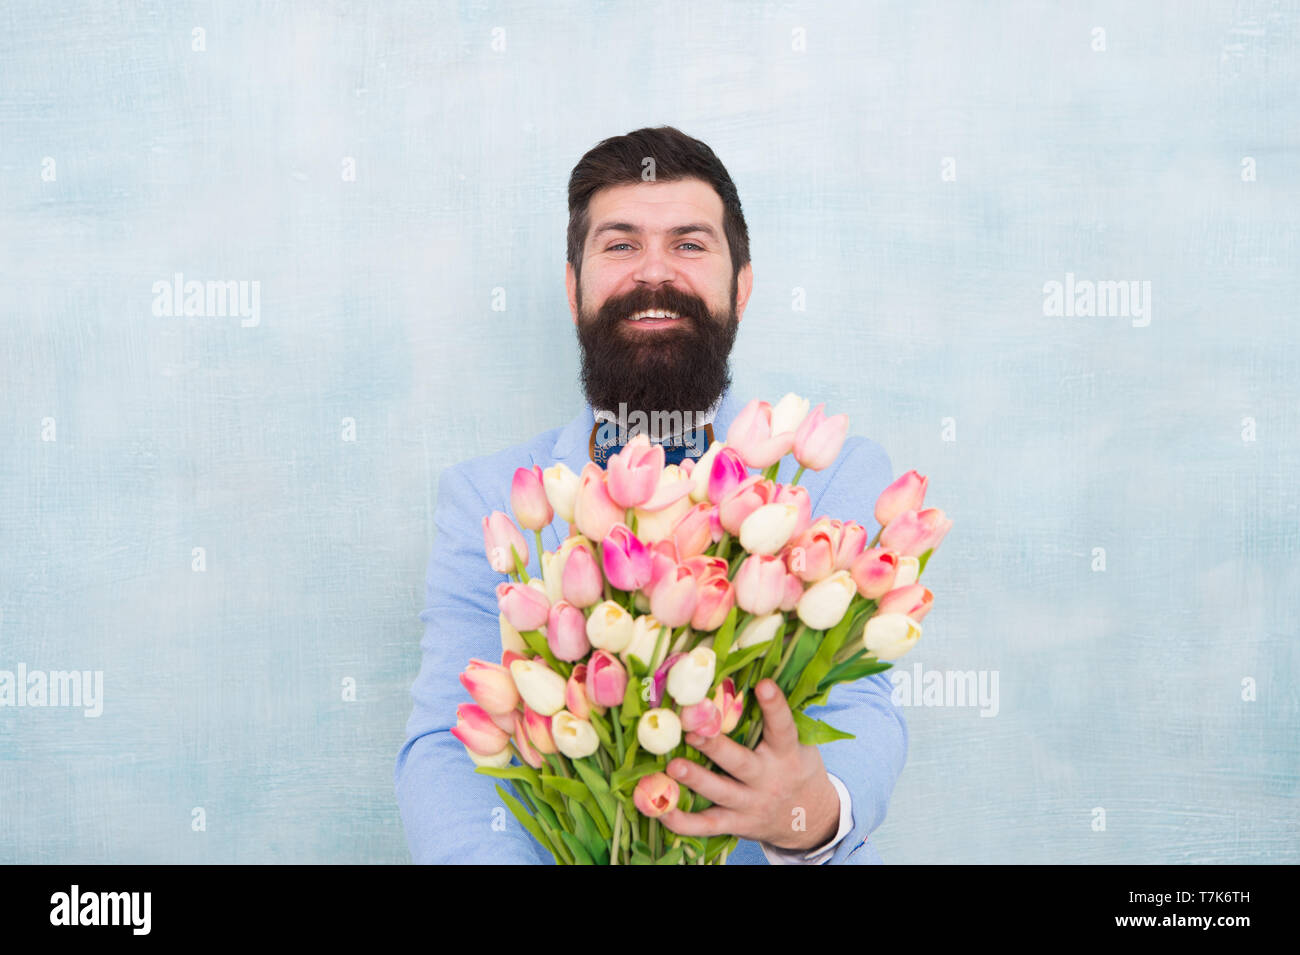 love date with flowers. Happy Birthday. bride groom at wedding party. bearded man in bow tie with tulip flowers. spring bouquet. 8 of march. womens day. Formal mature businessman. Enjoying spring day. - Stock Image